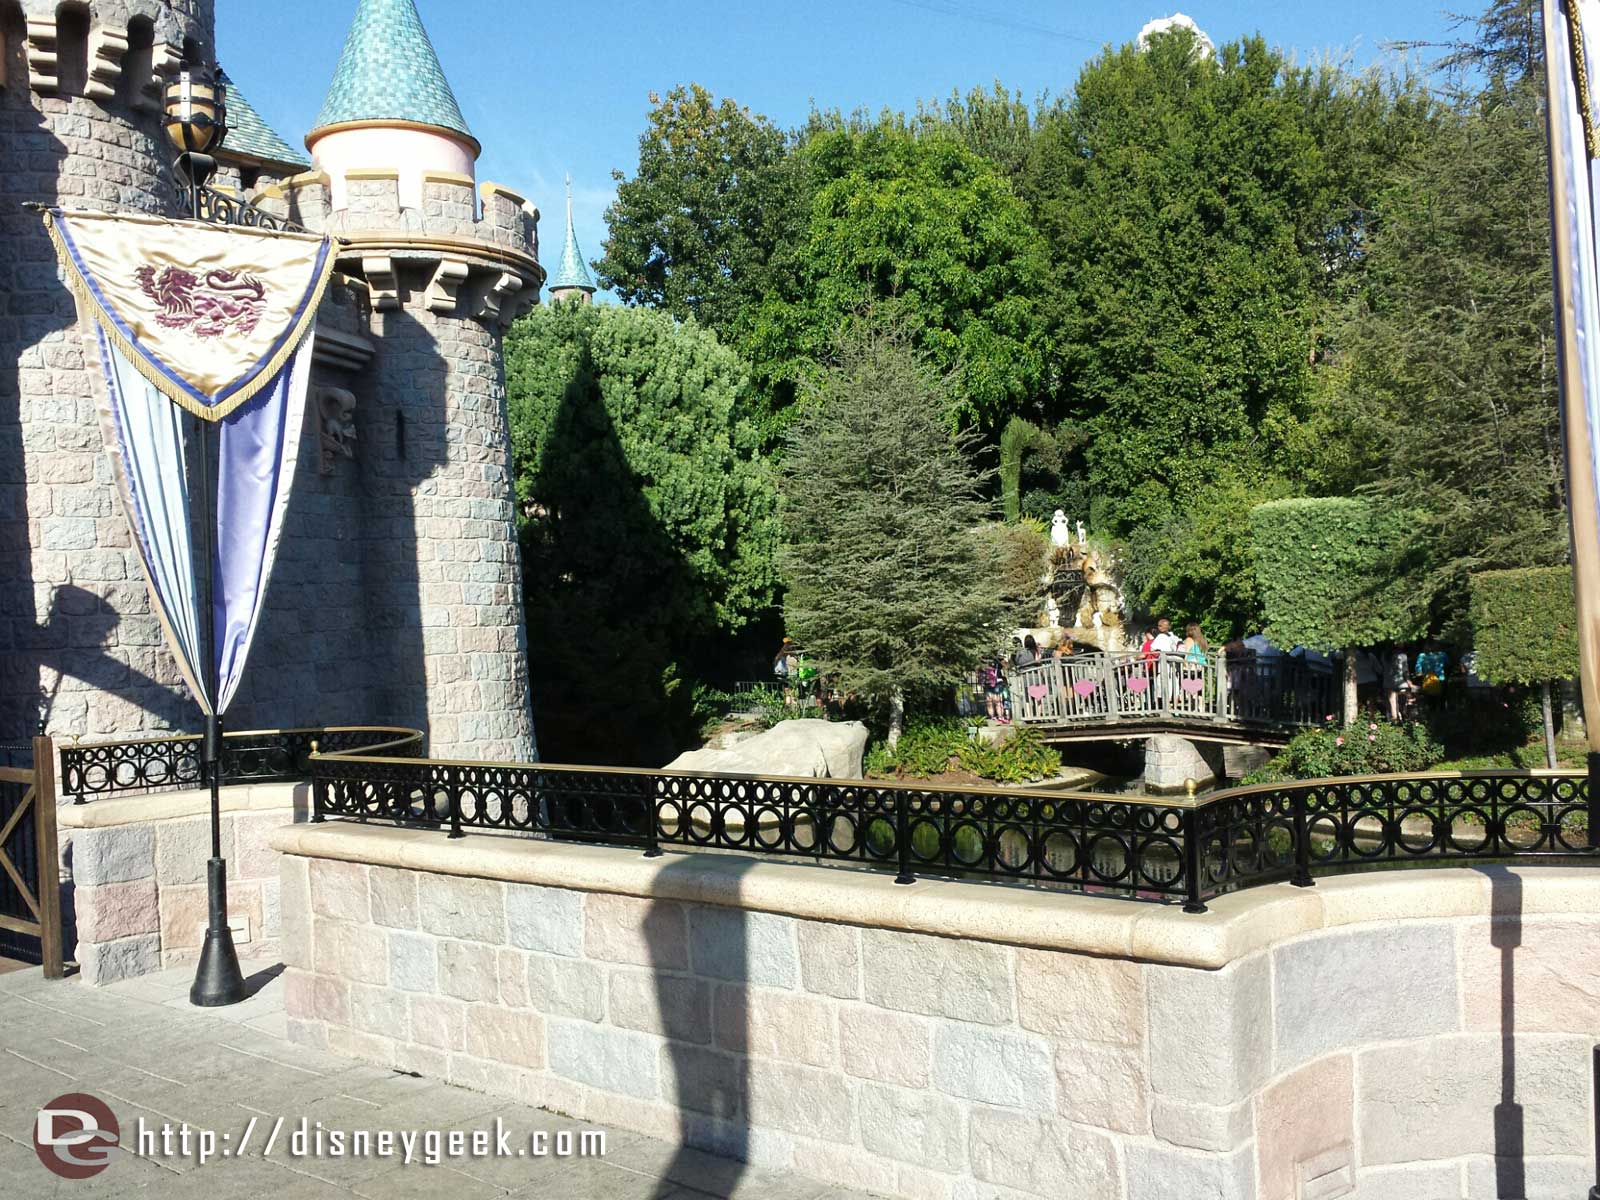 Another view of the new railings #Disneyland